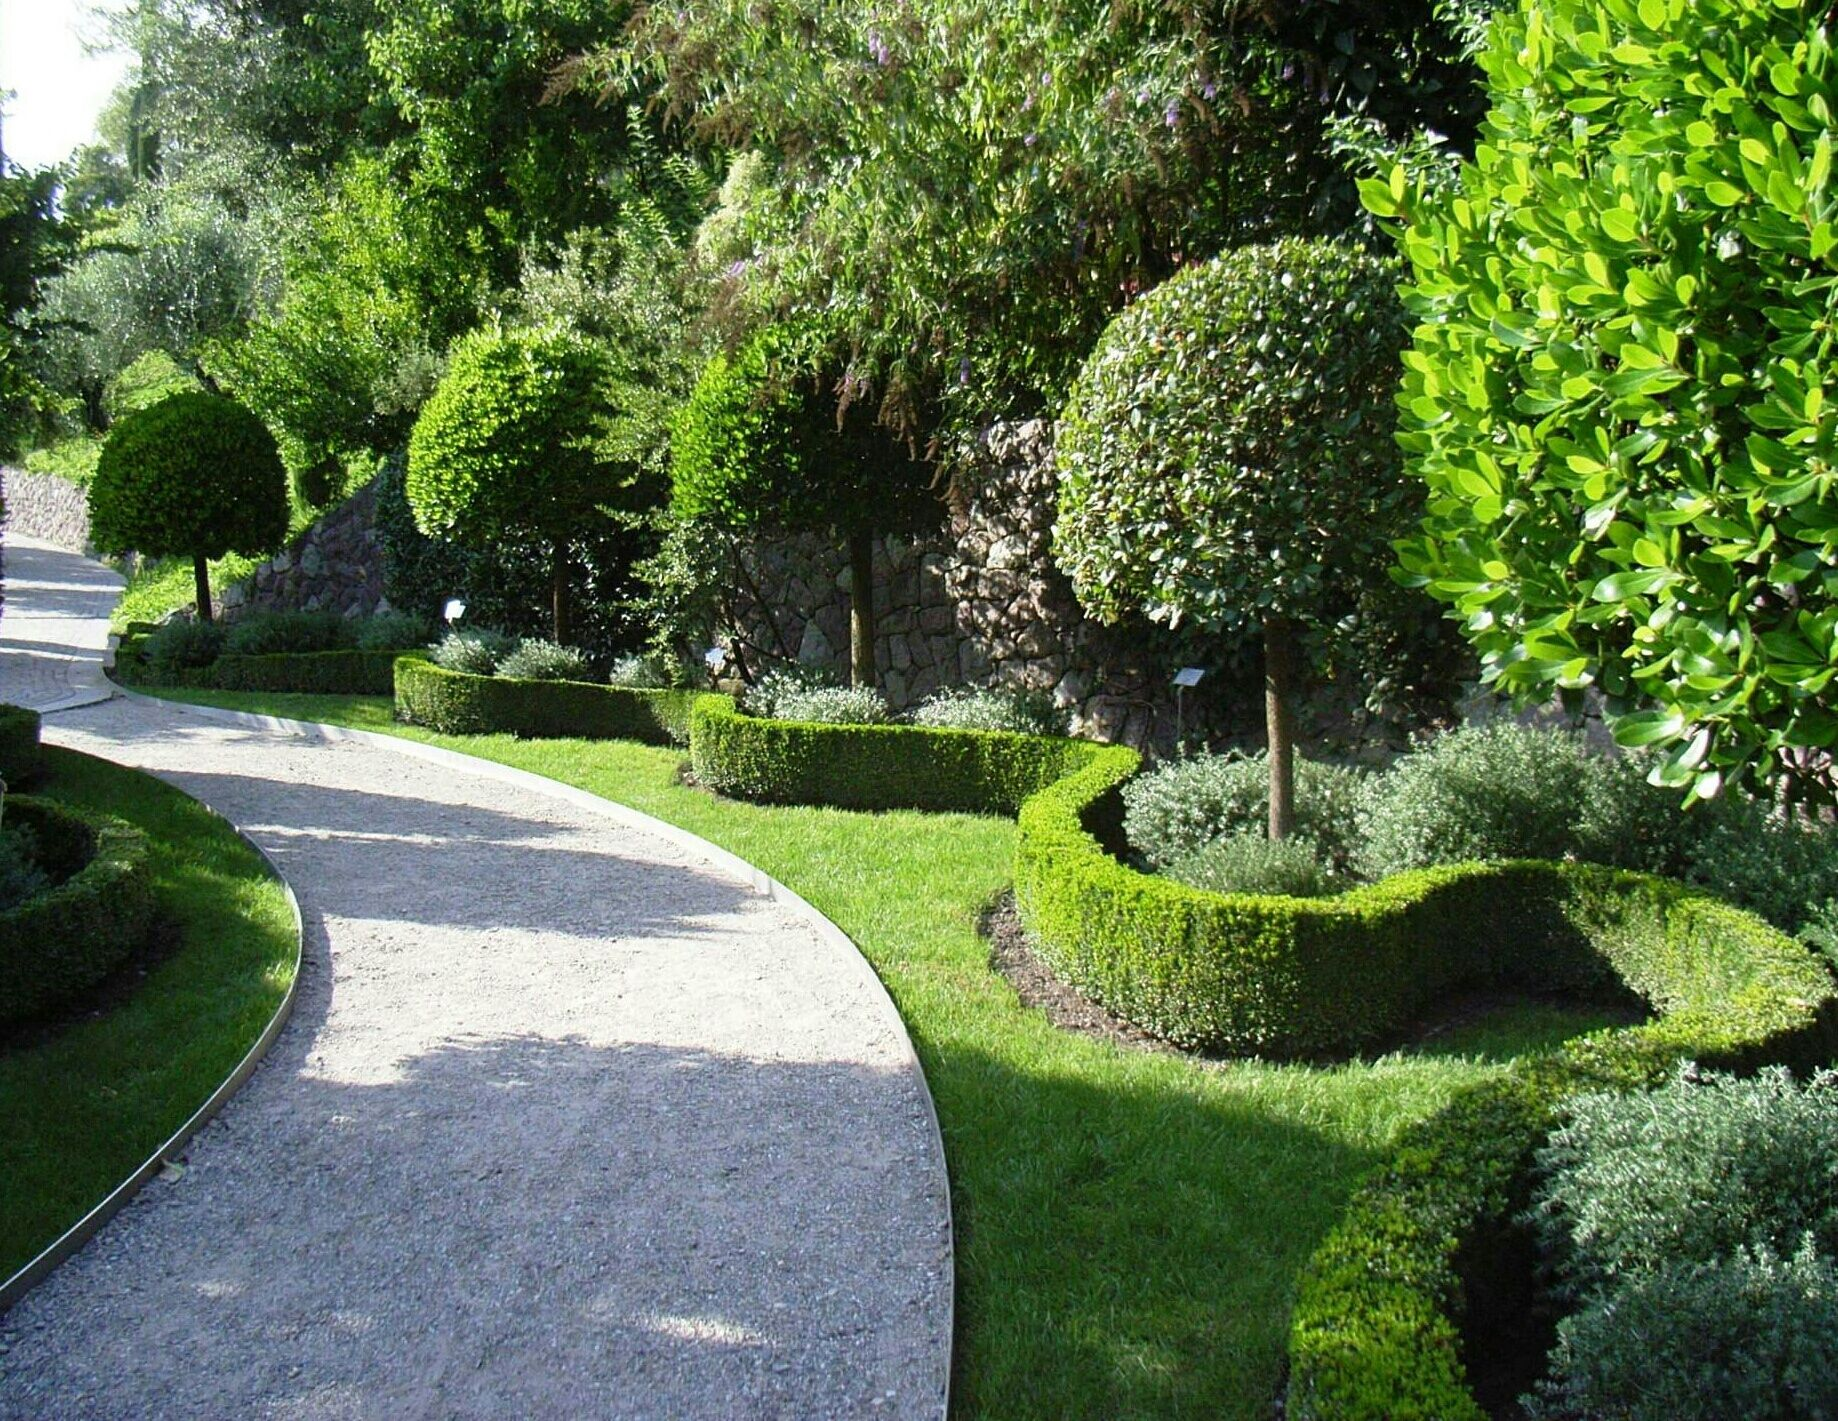 Do It Yourself Home Design: 10 Do-It-Yourself Landscaping Tips